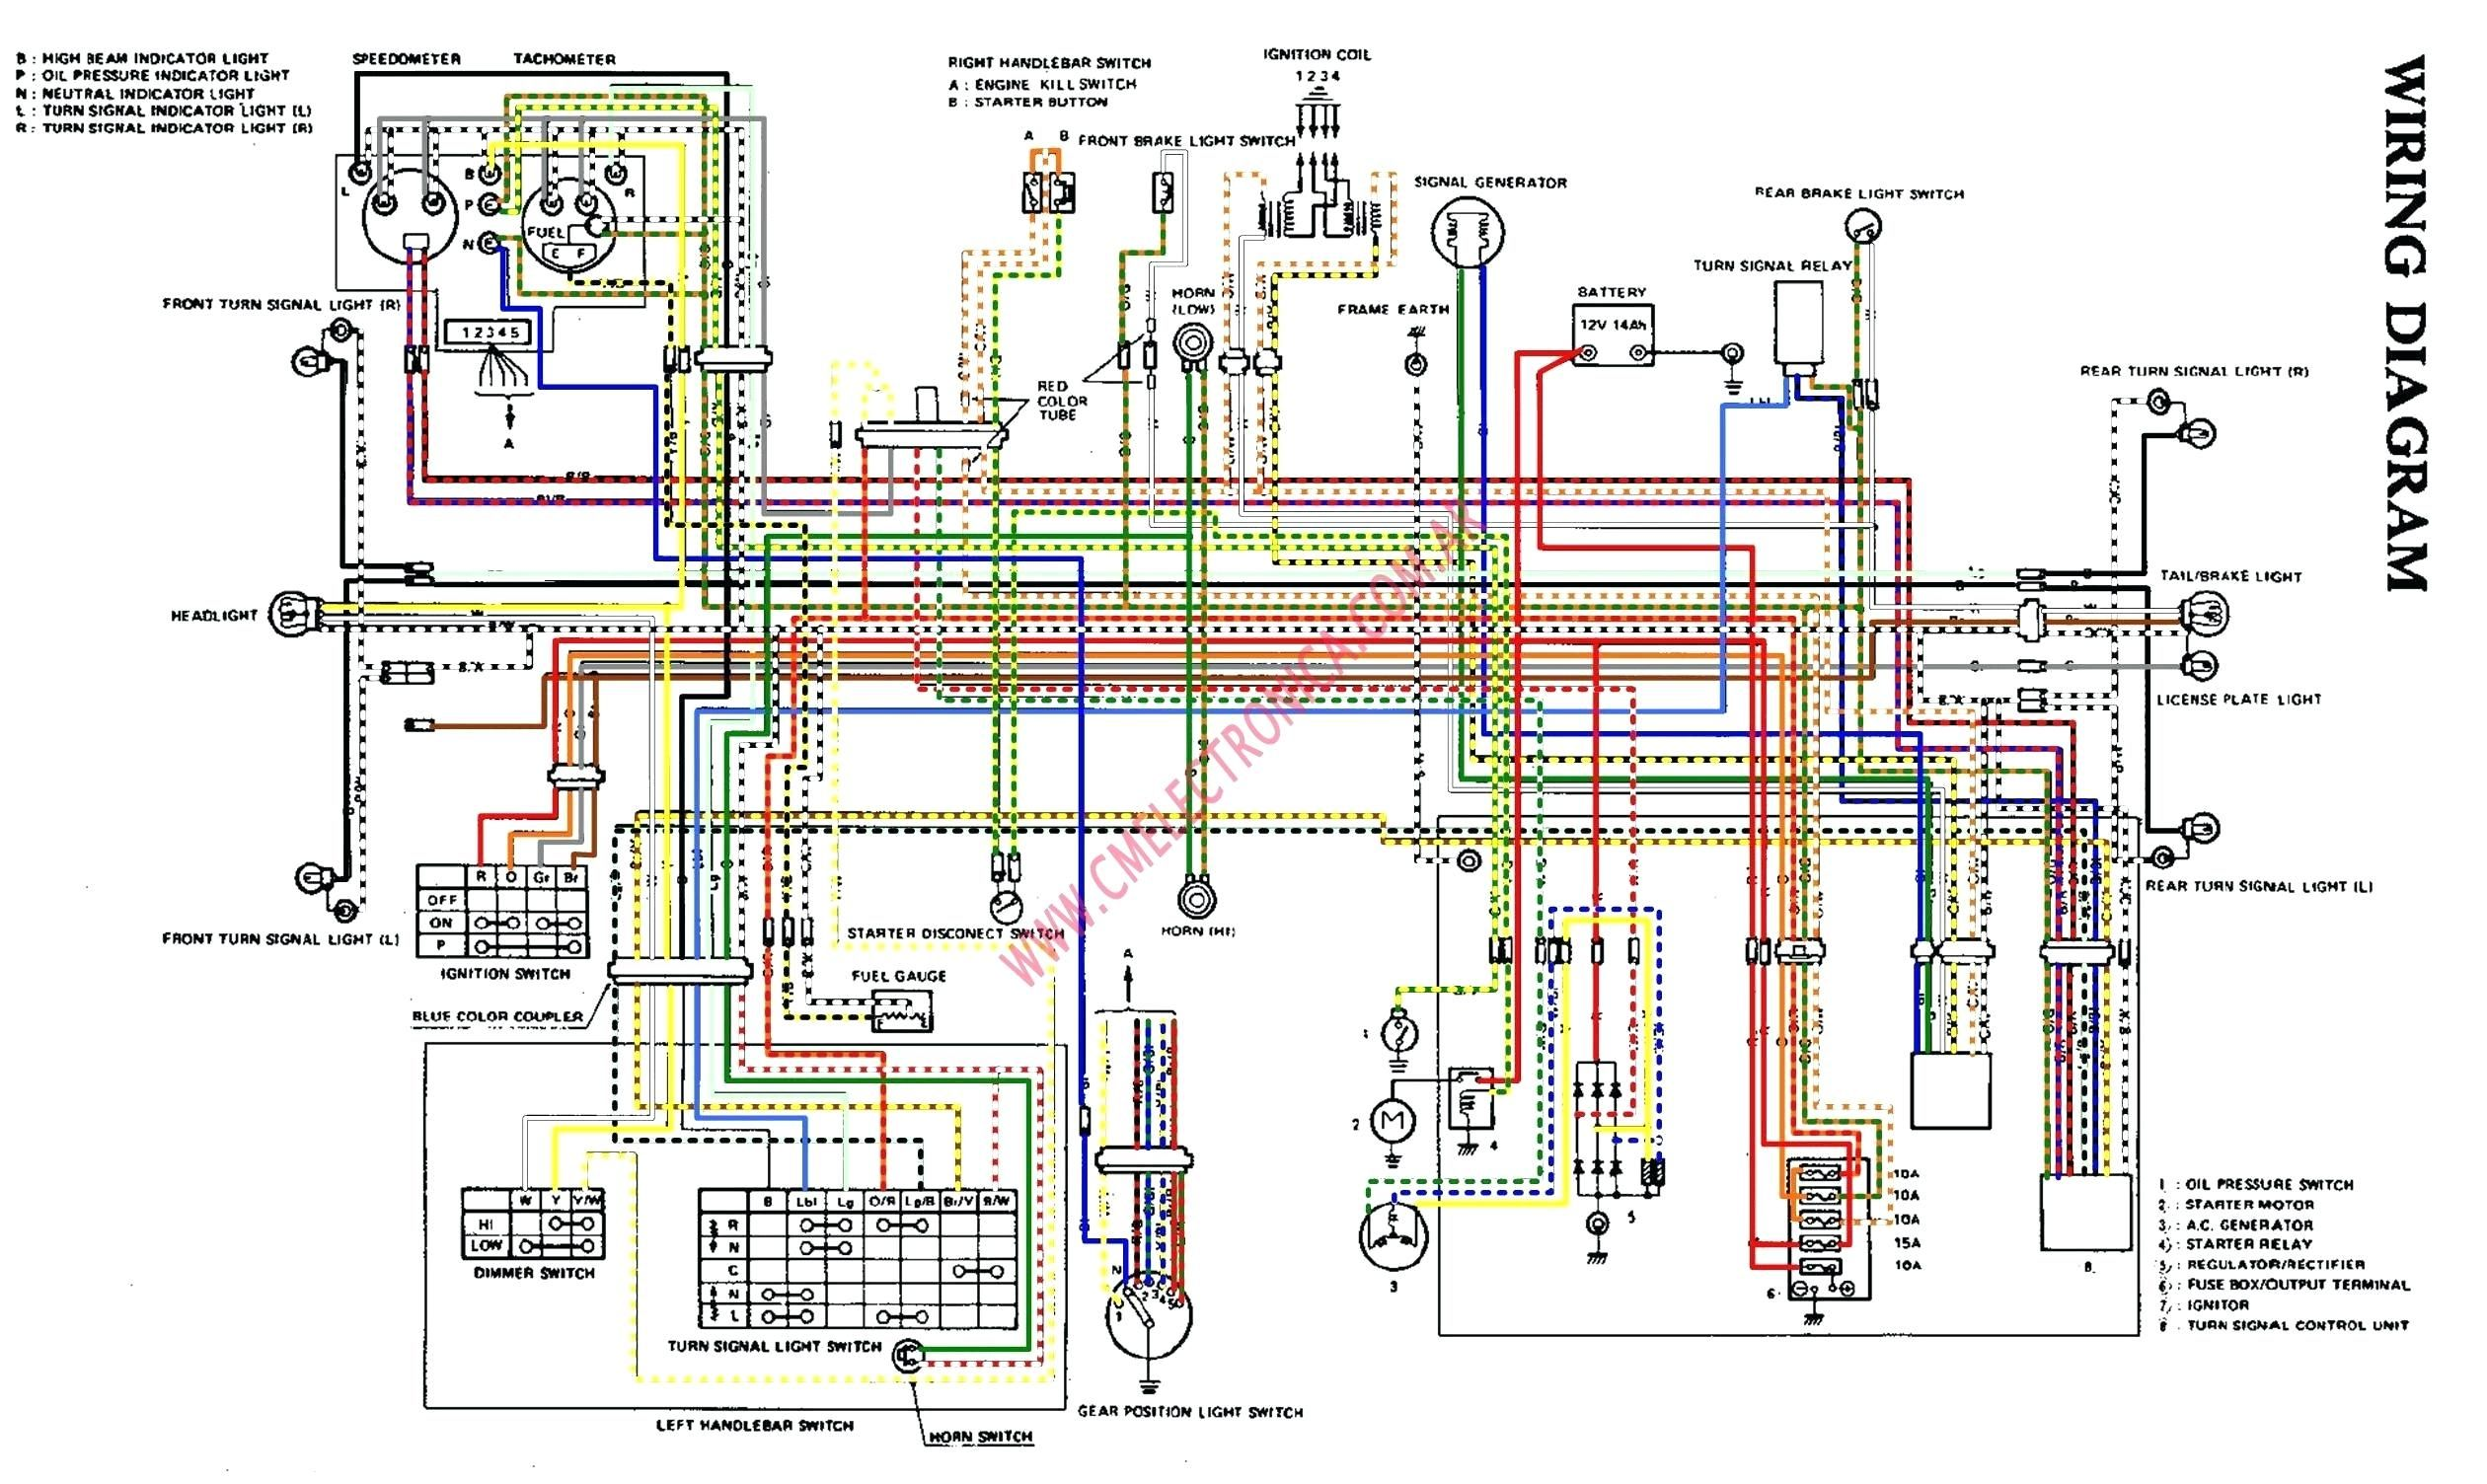 Suzuki Gs550 Wiring Diagram – volovets.info | Motorcycle wiring, Diagram,  Suzuki | Gs550 Wiring Diagram |  | Pinterest